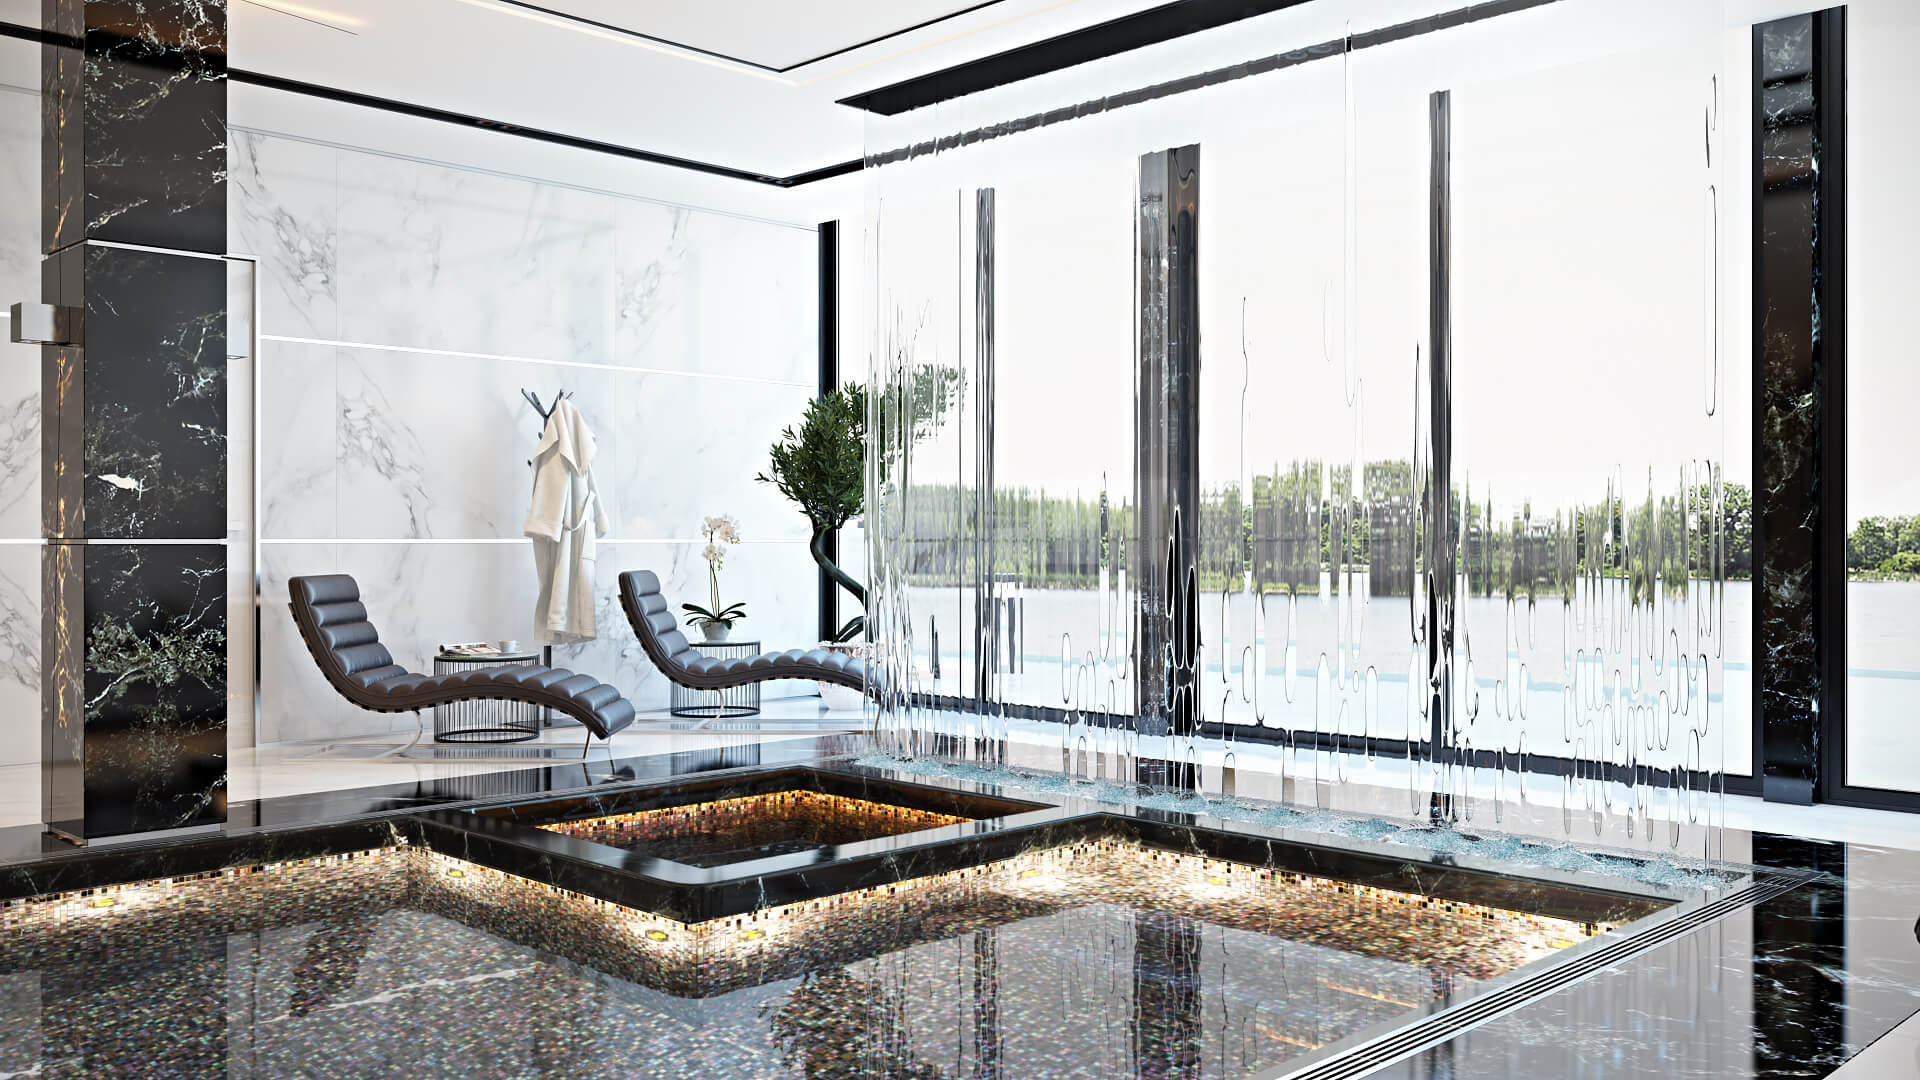 Swimming Pool 3D Rendering by a Top-Class 3D Visualizer